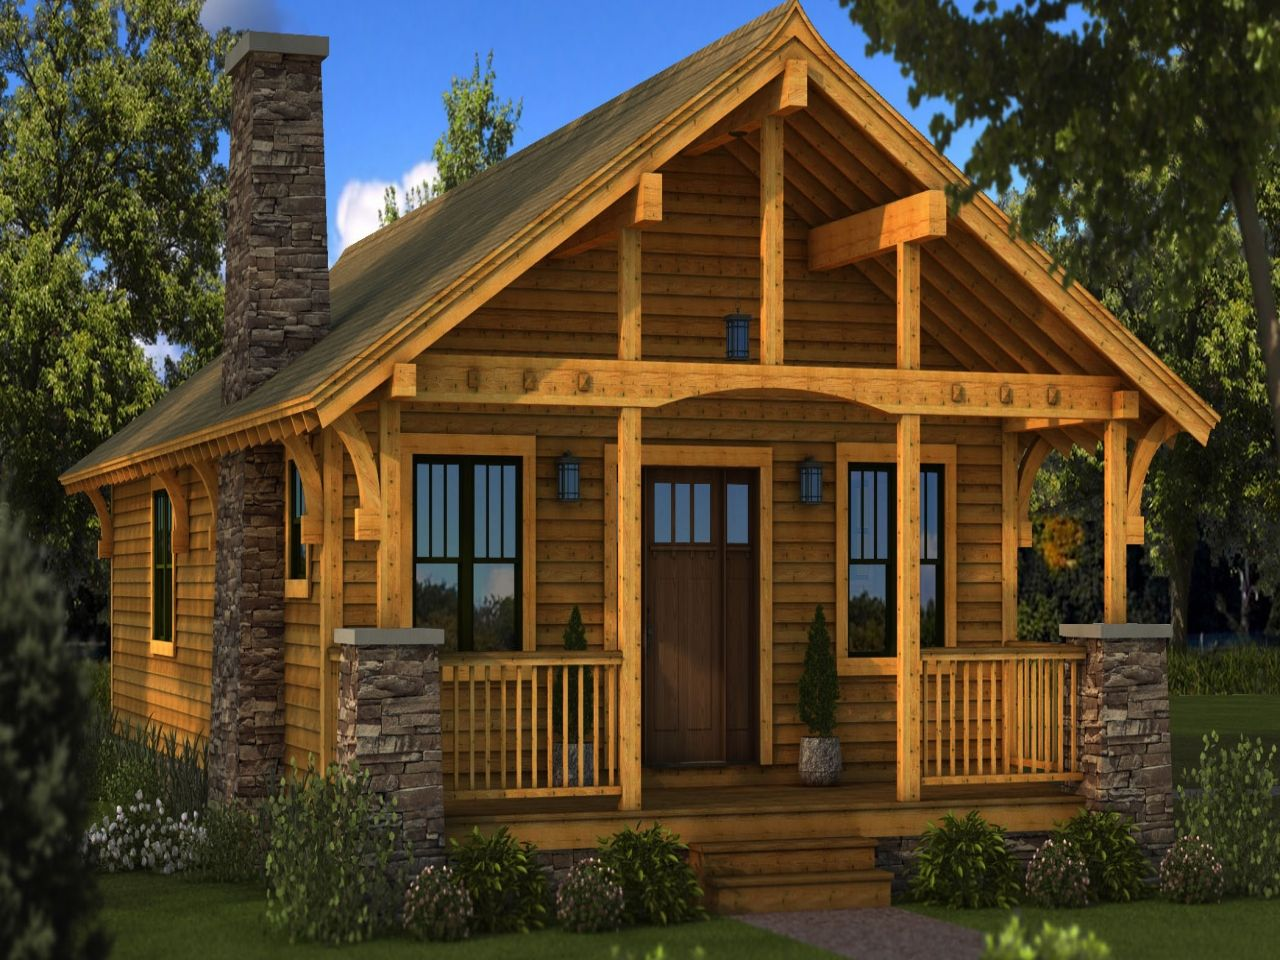 Small log cabin homes plans one story cabin plans for Log home blueprints